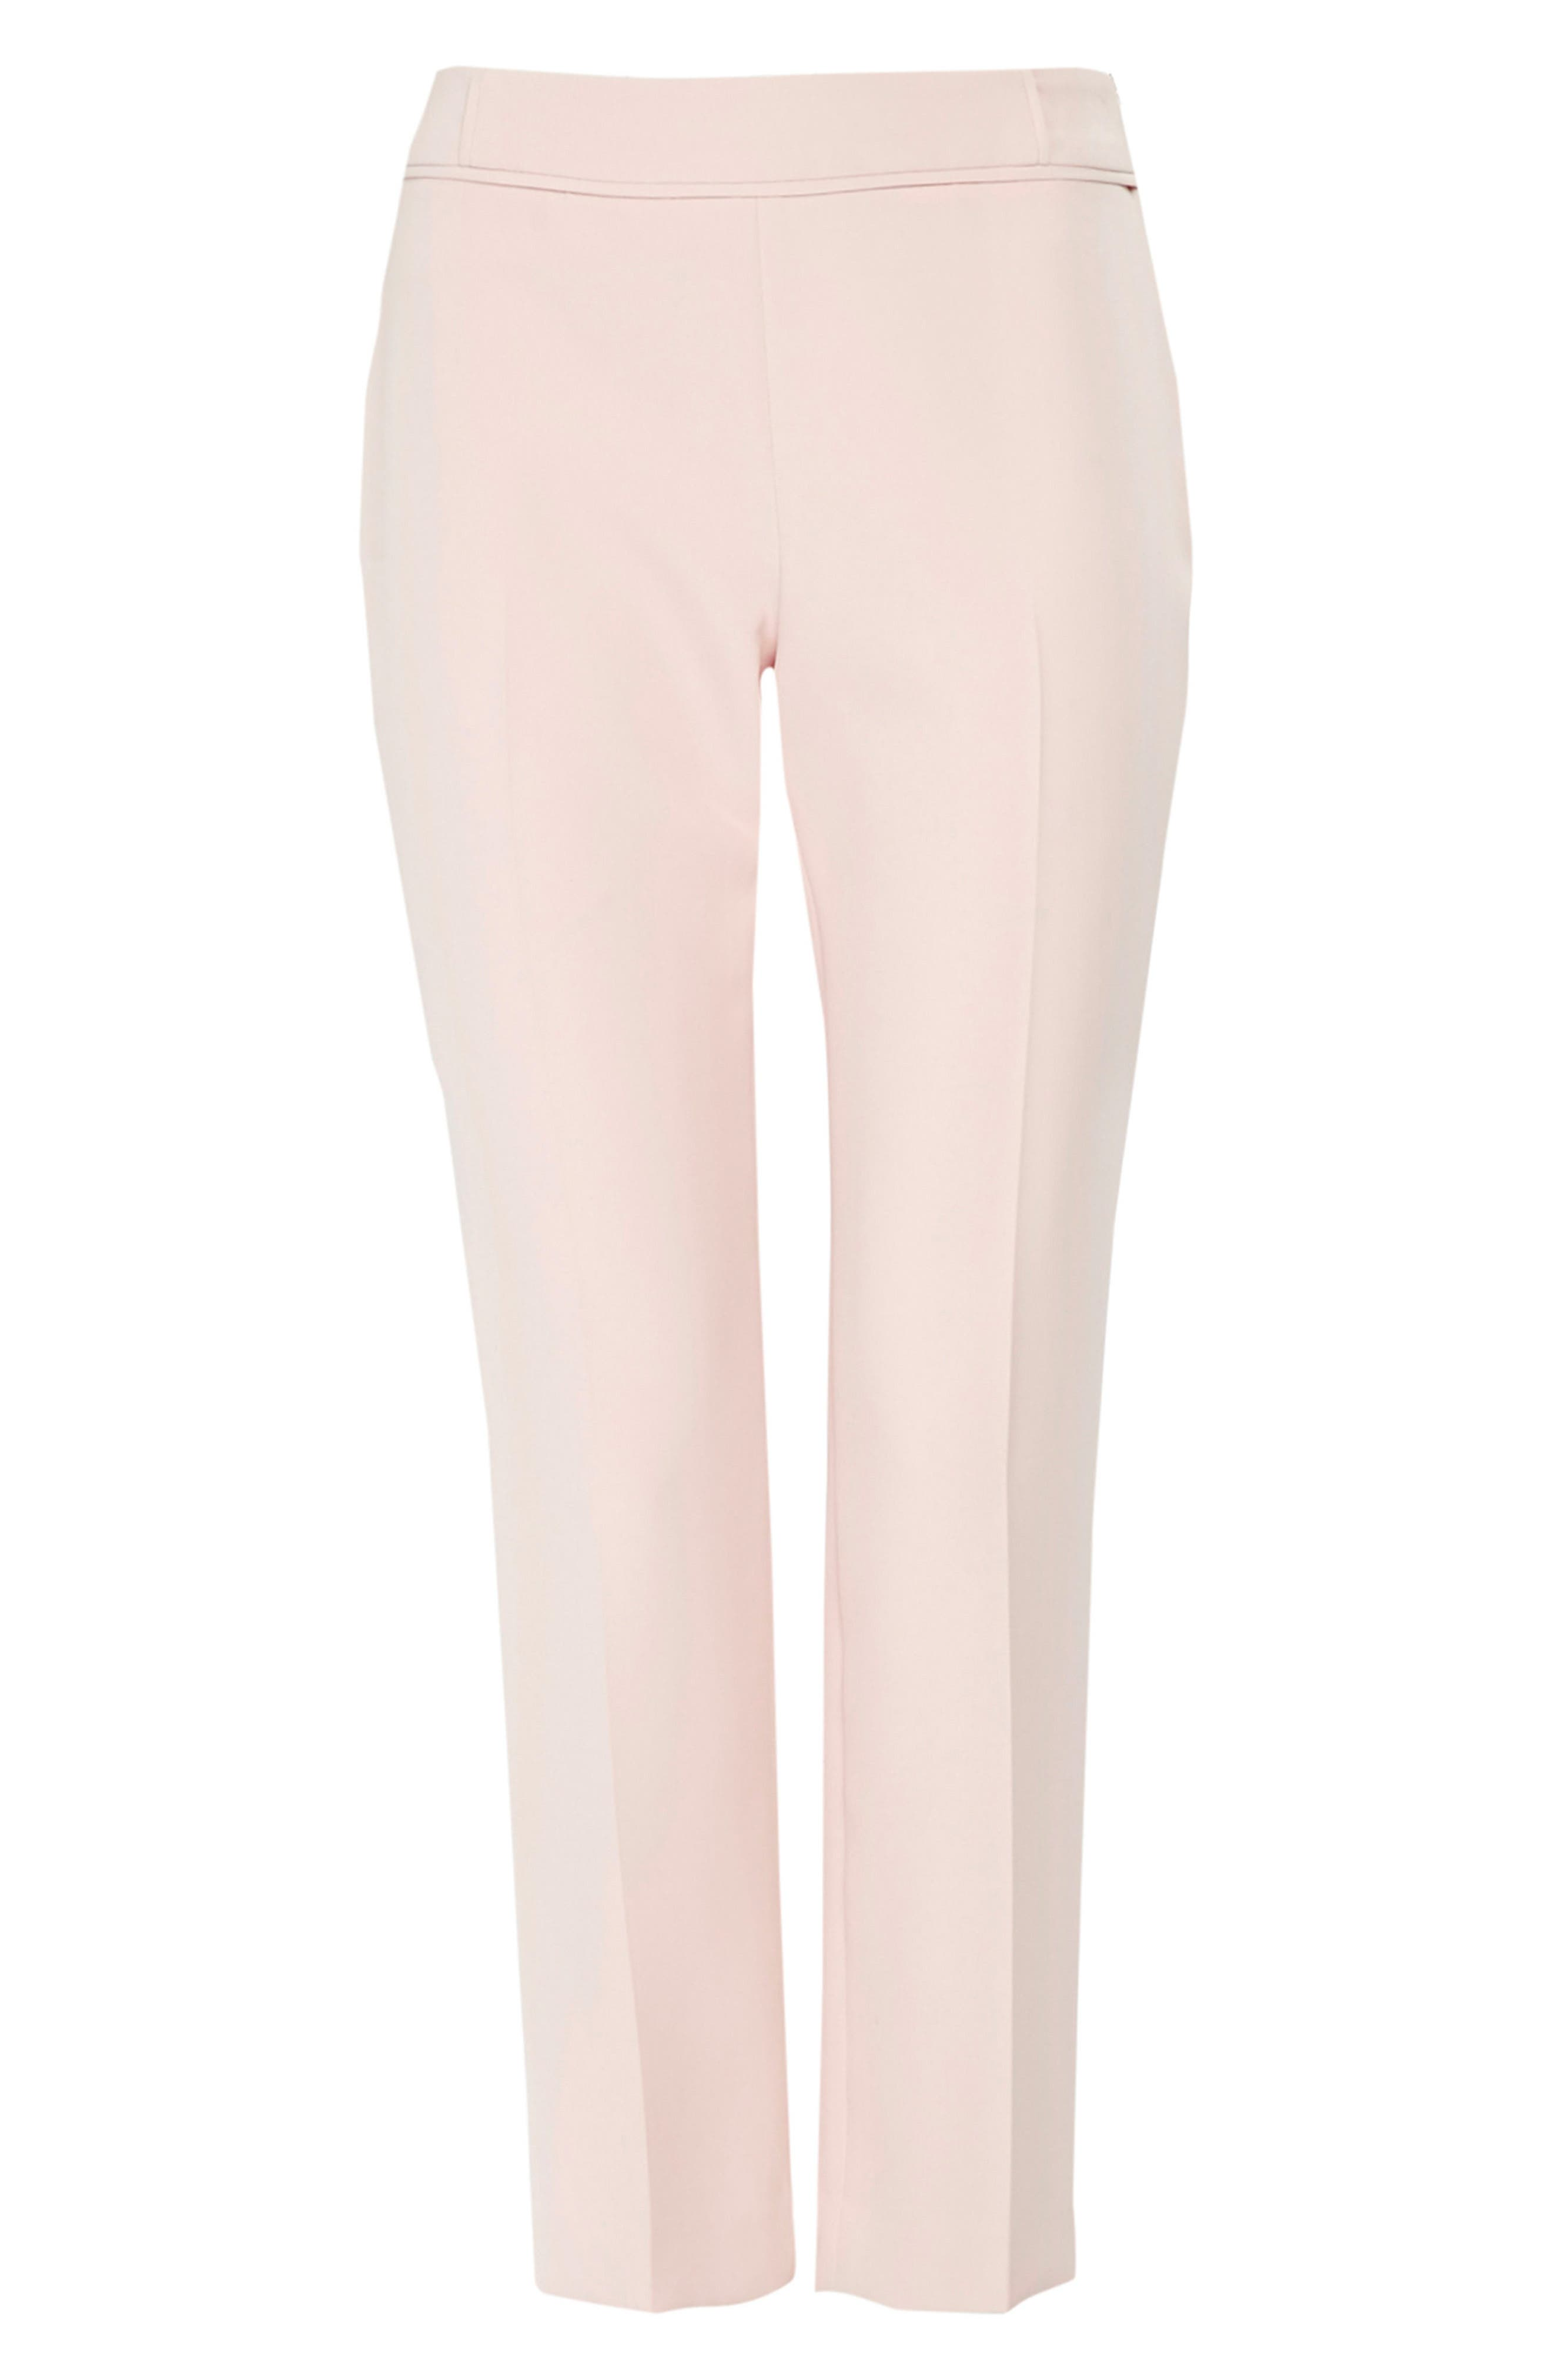 Sienna Trousers,                             Alternate thumbnail 4, color,                             650